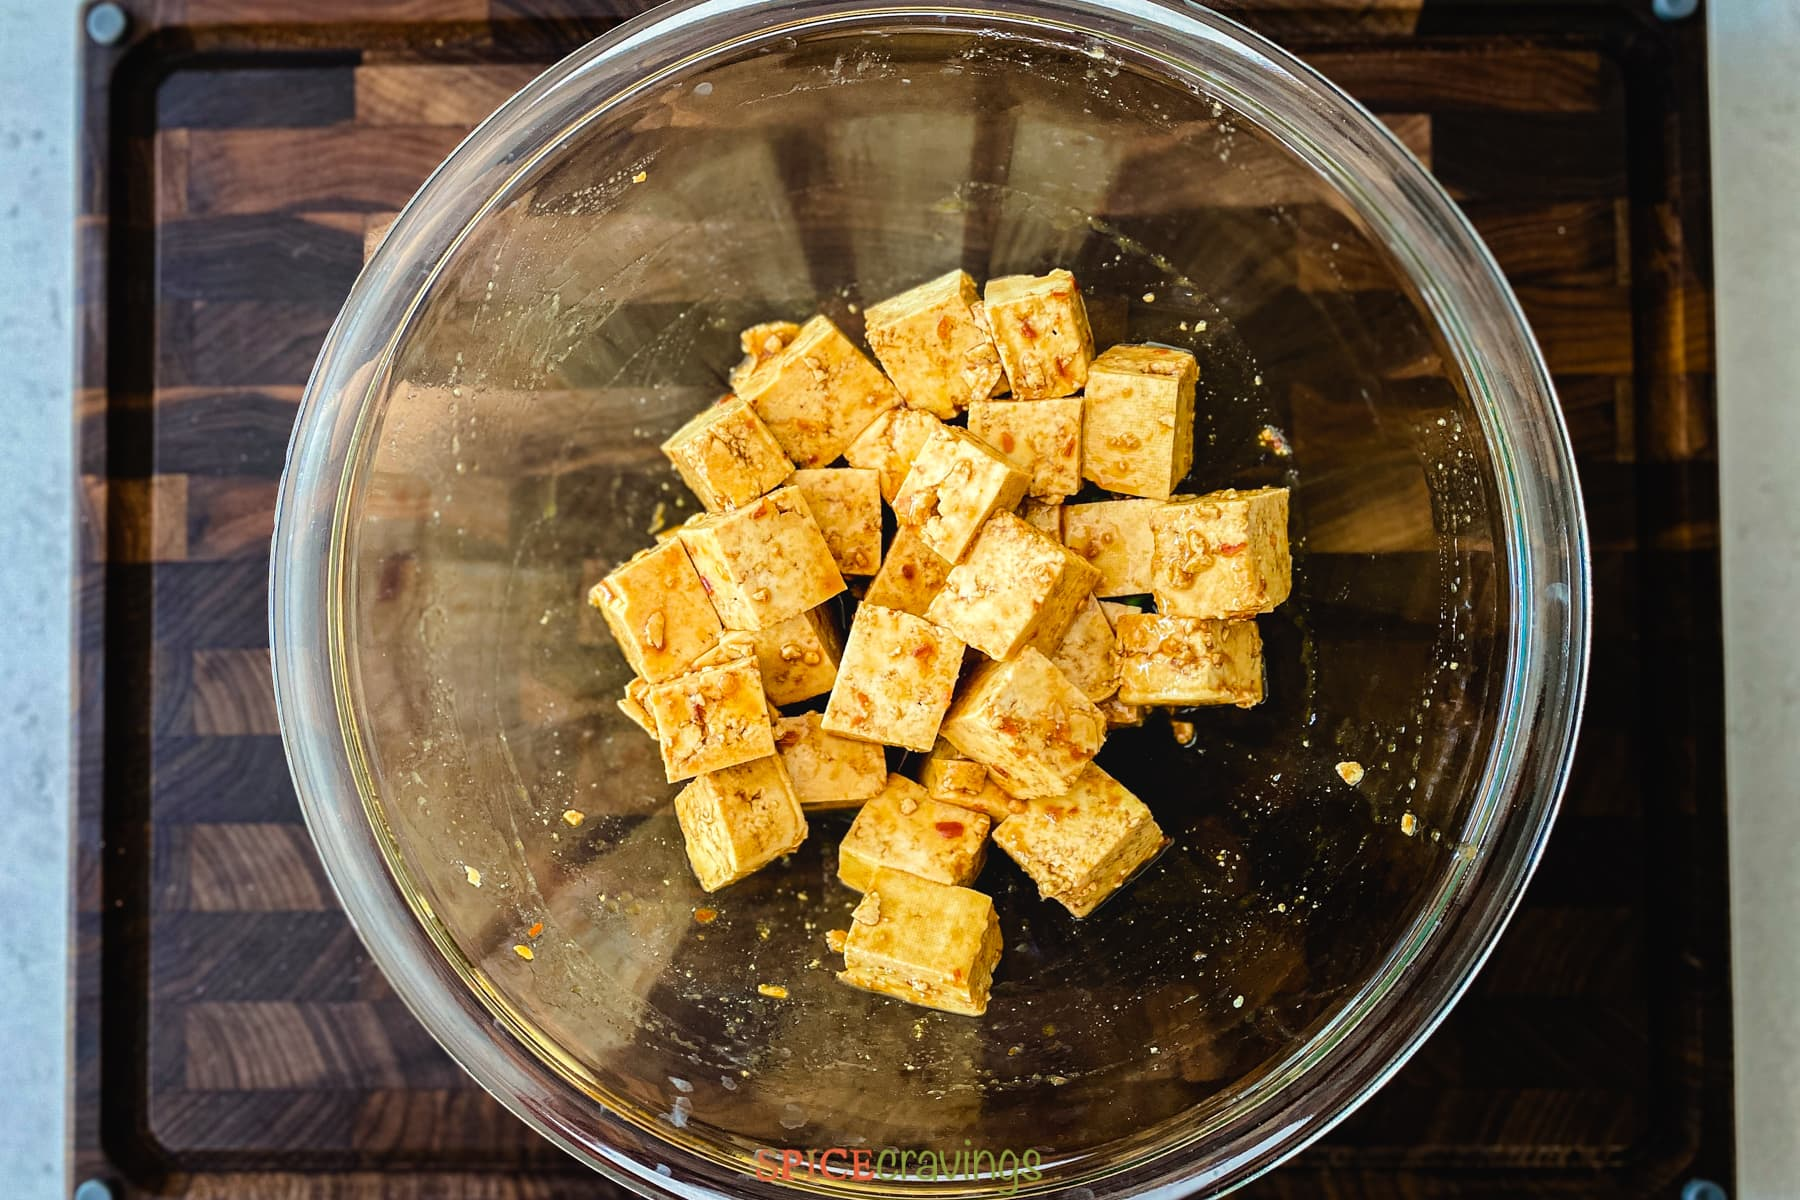 Marinating tofu cubes in a glass bowl